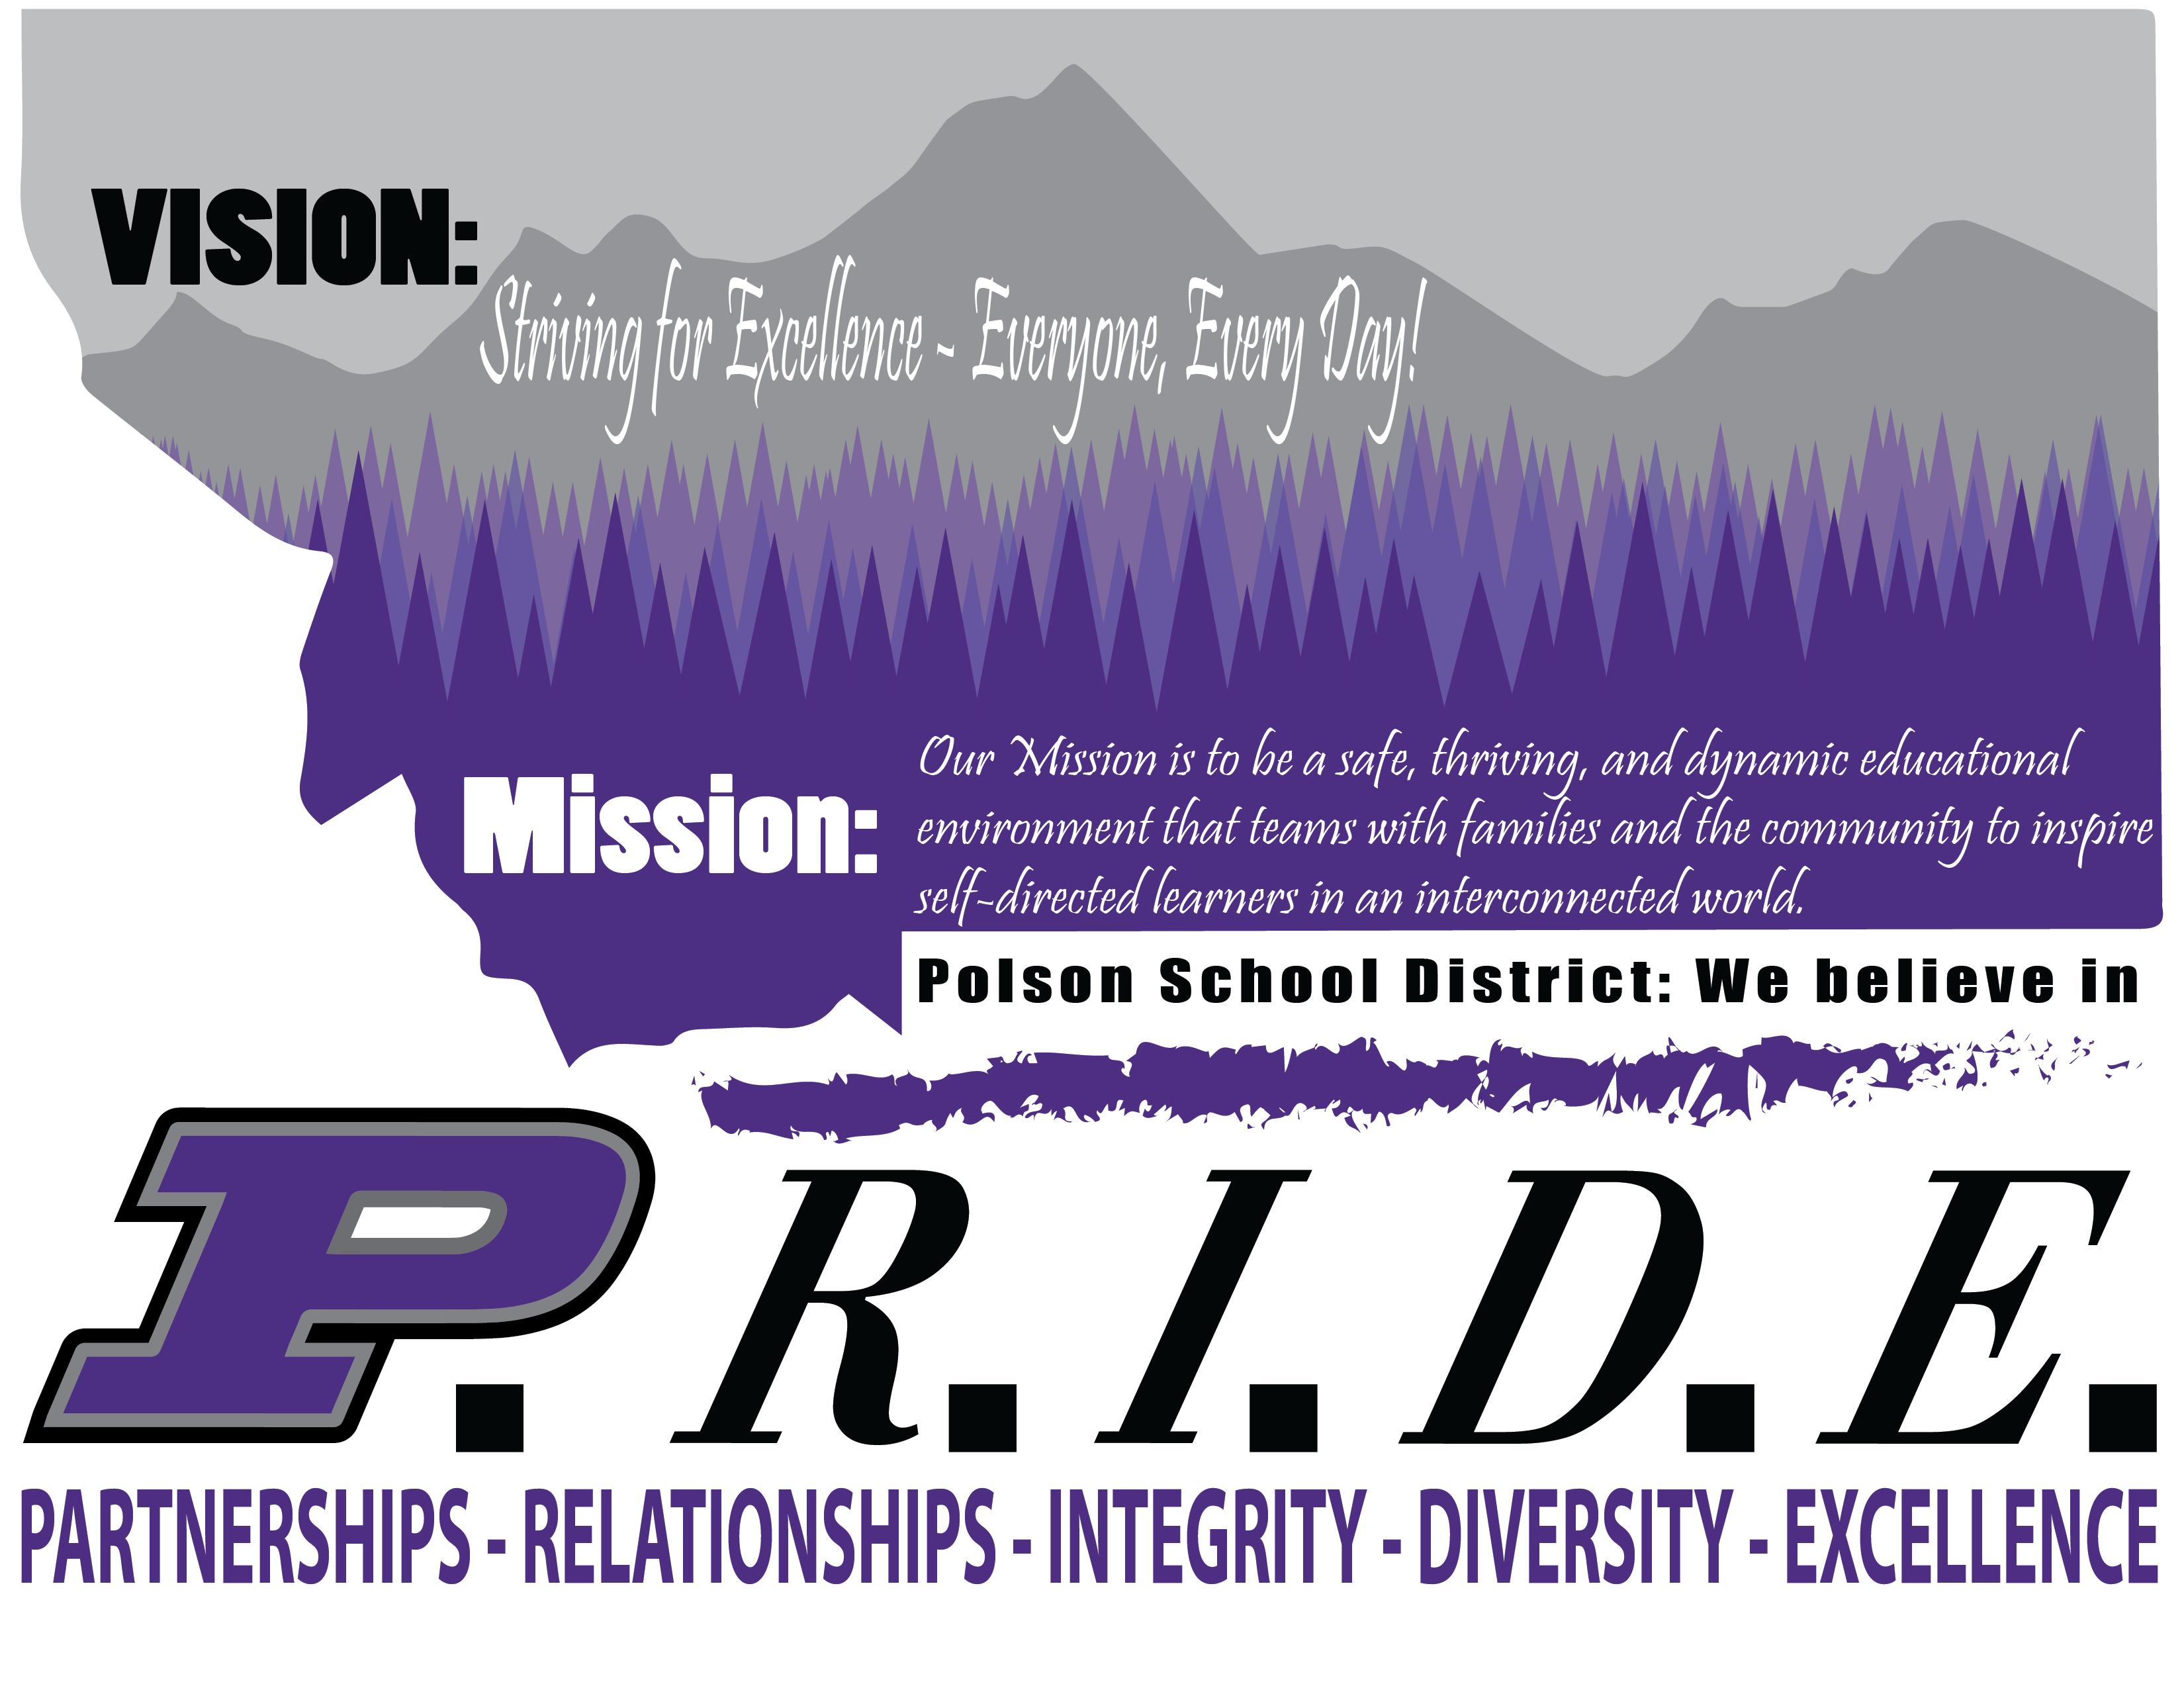 PRIDE Mission and Vision Statement Graphic